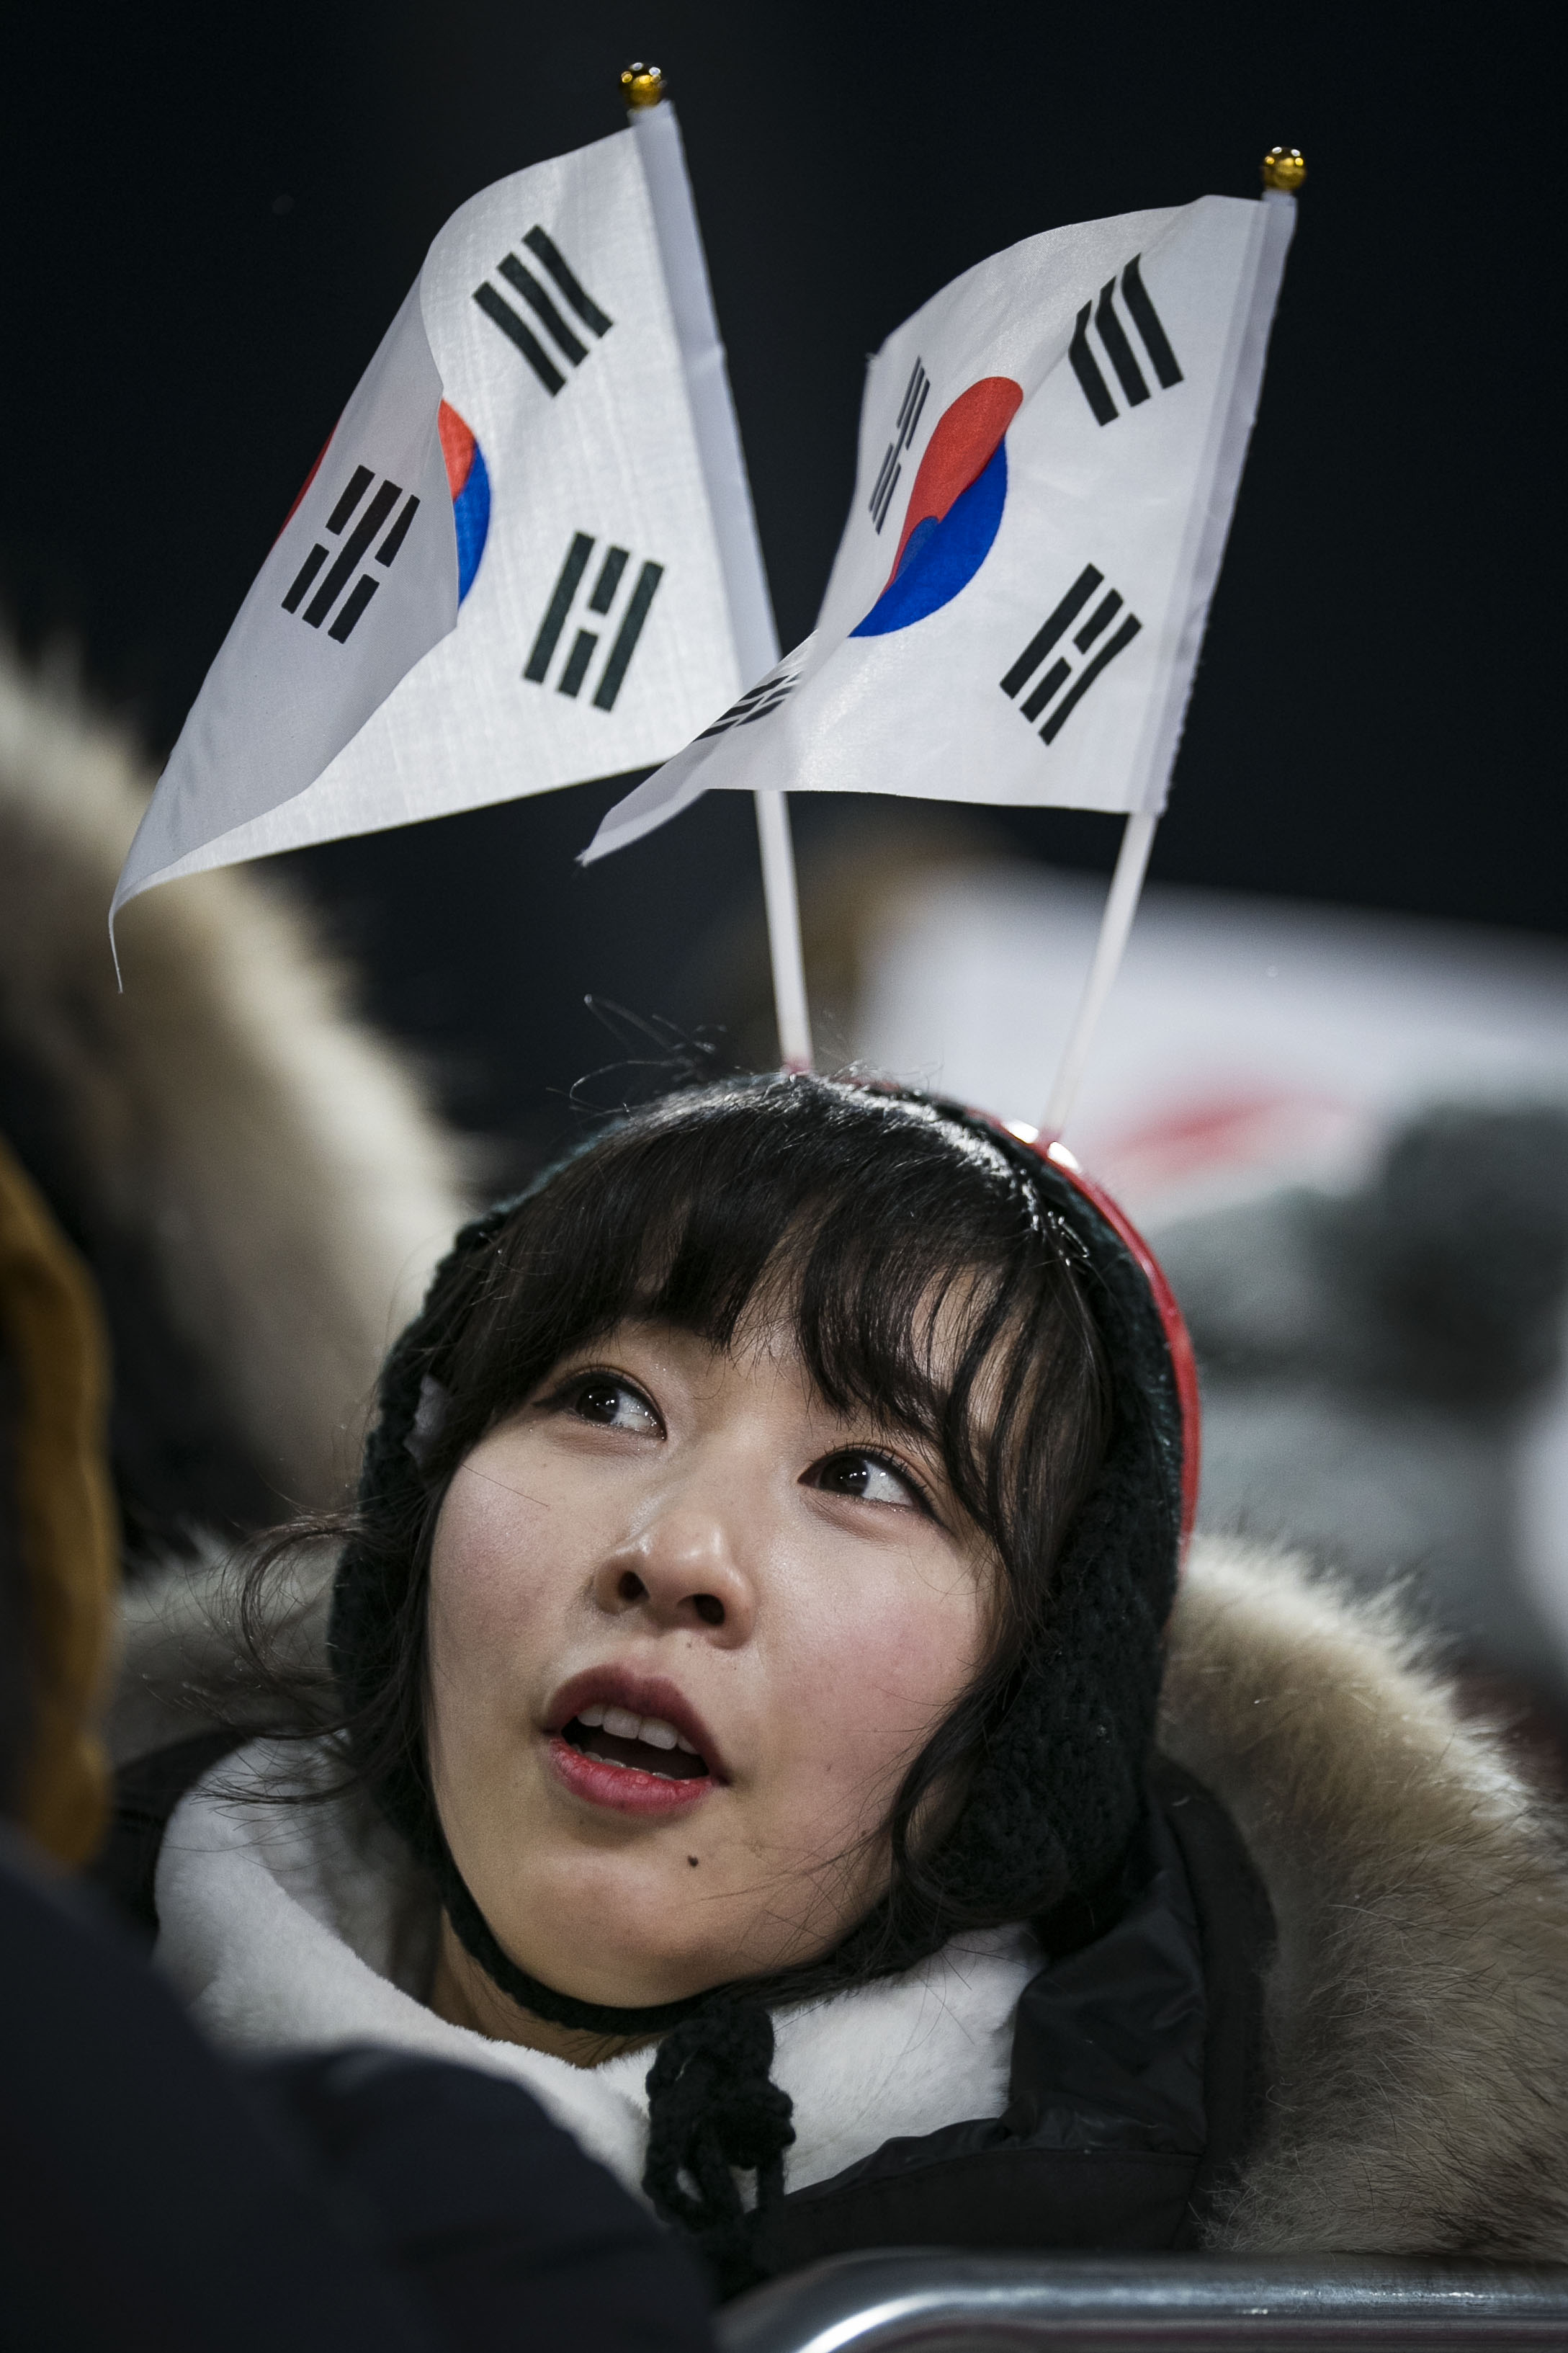 A South Korea fan watches ski jumping from the sidelines, Feb. 16, at PyeongChang Ski Jumping Center, South Korea during the 2018 Winter Games.